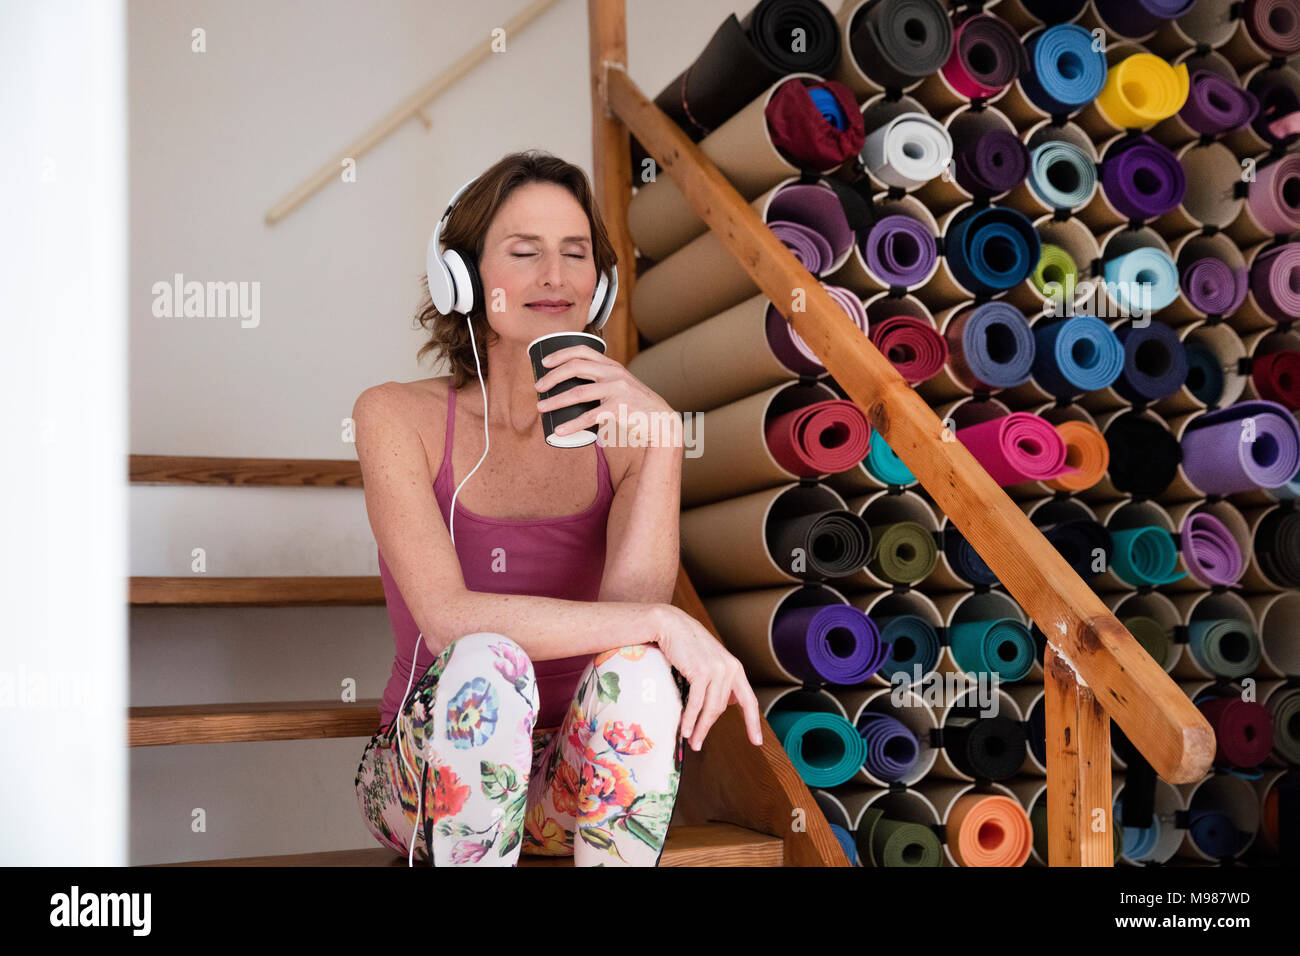 Relaxed mature woman listening to music next to assortment of yoga mats - Stock Image